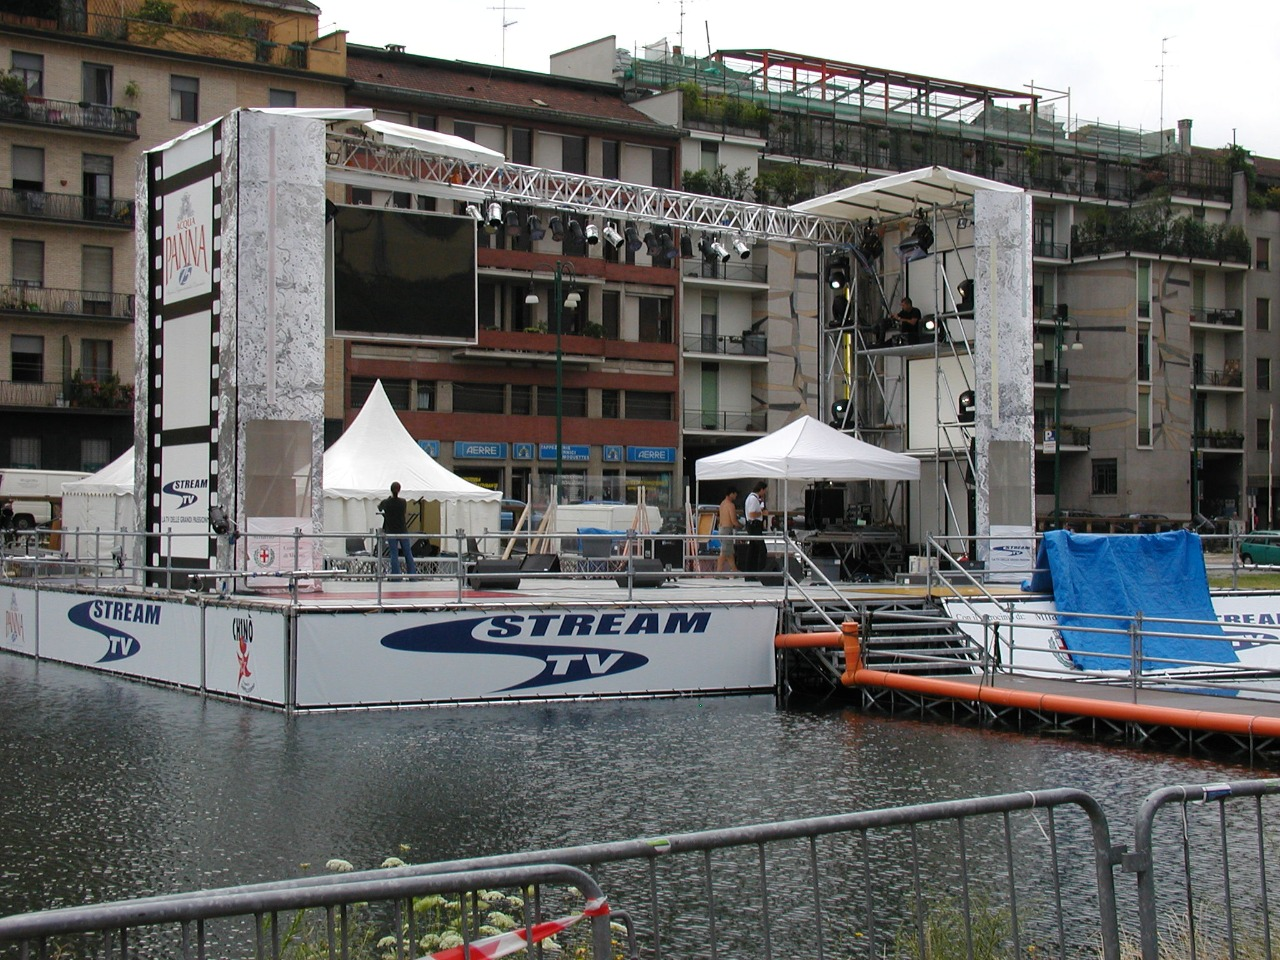 Gallery foto n.1 Stage - Concert on the Naviglio